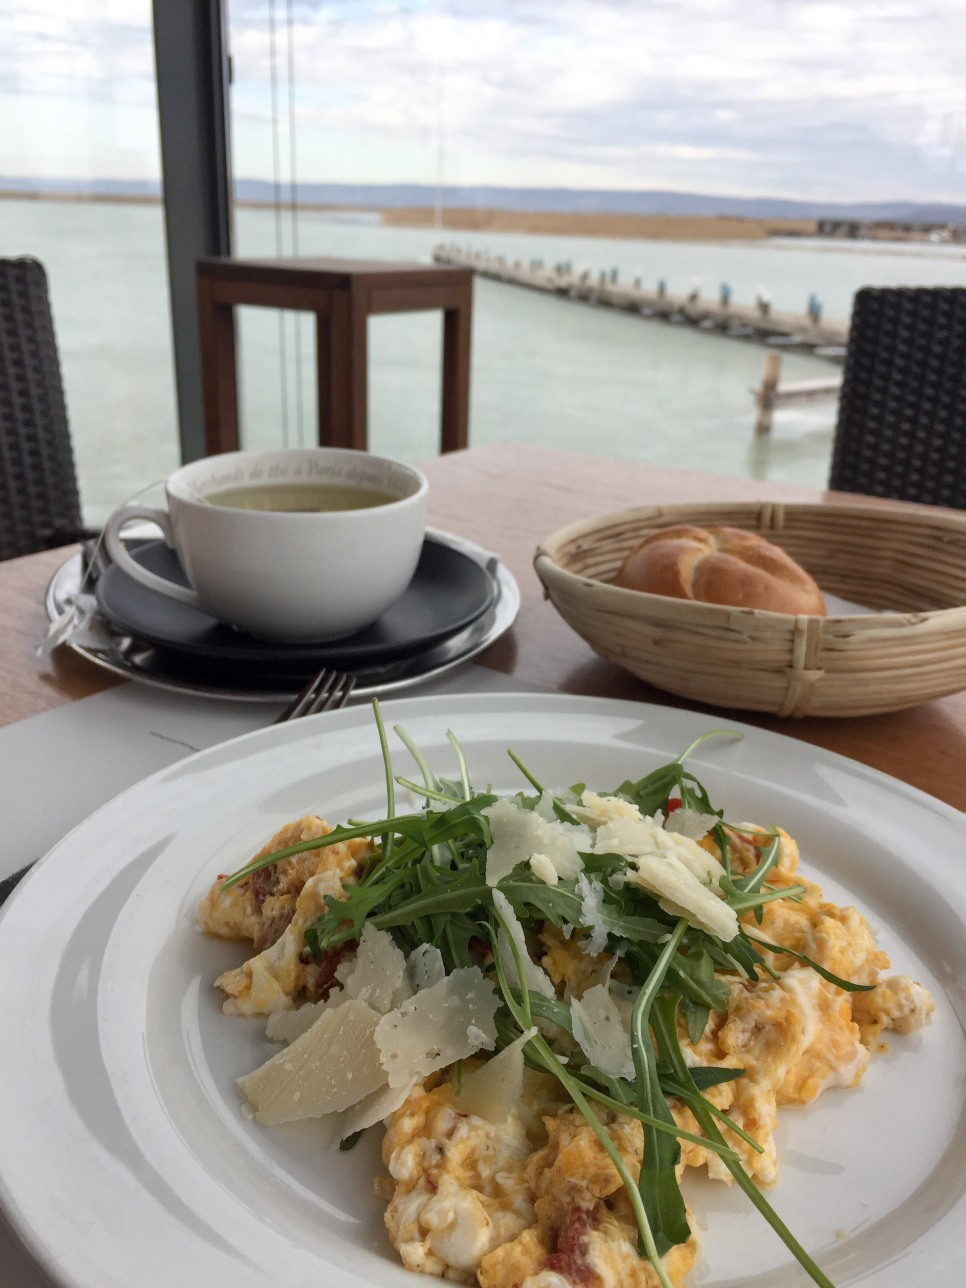 Scrambled eggs with Grana and Ruccola